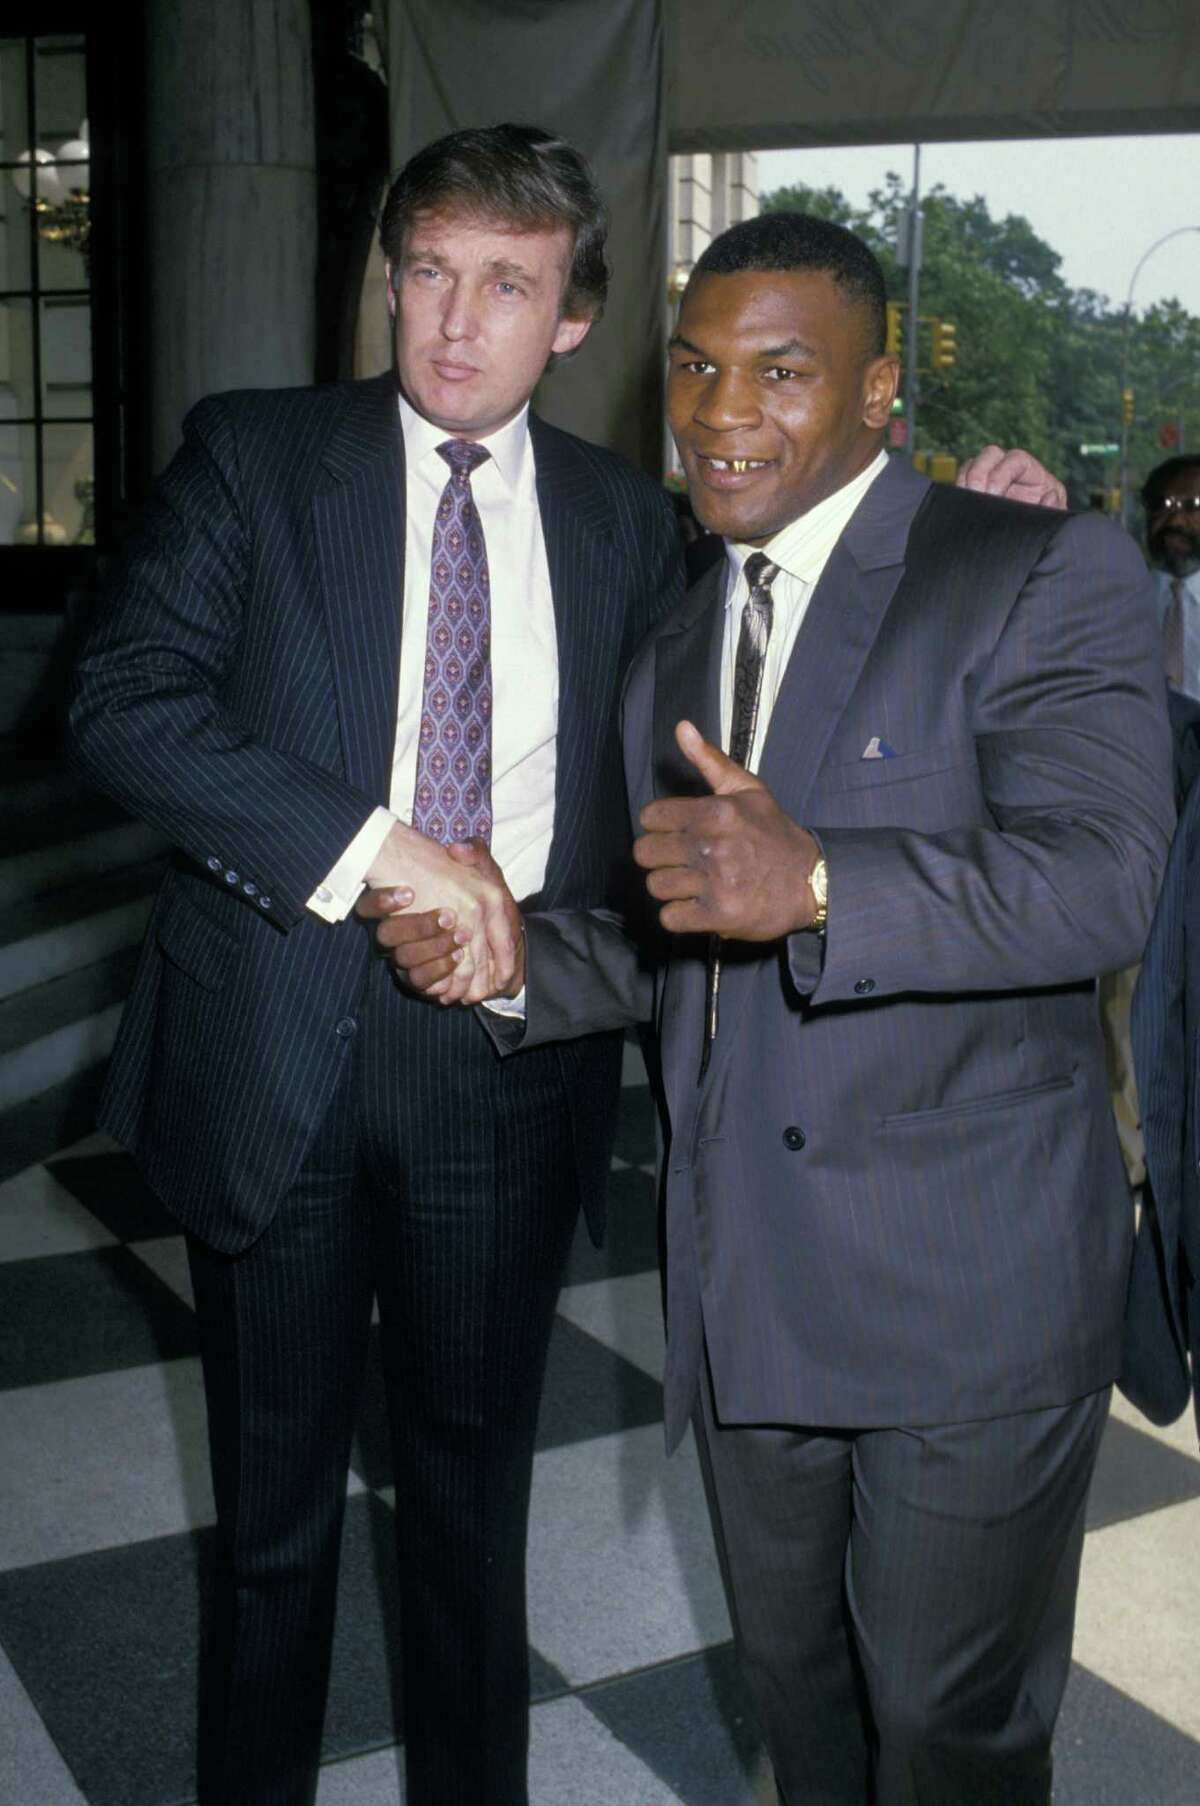 The candidate and the fighter GOP nominee Donald Trump said in a 1992 interview with NBC that boxer Mike Tyson was